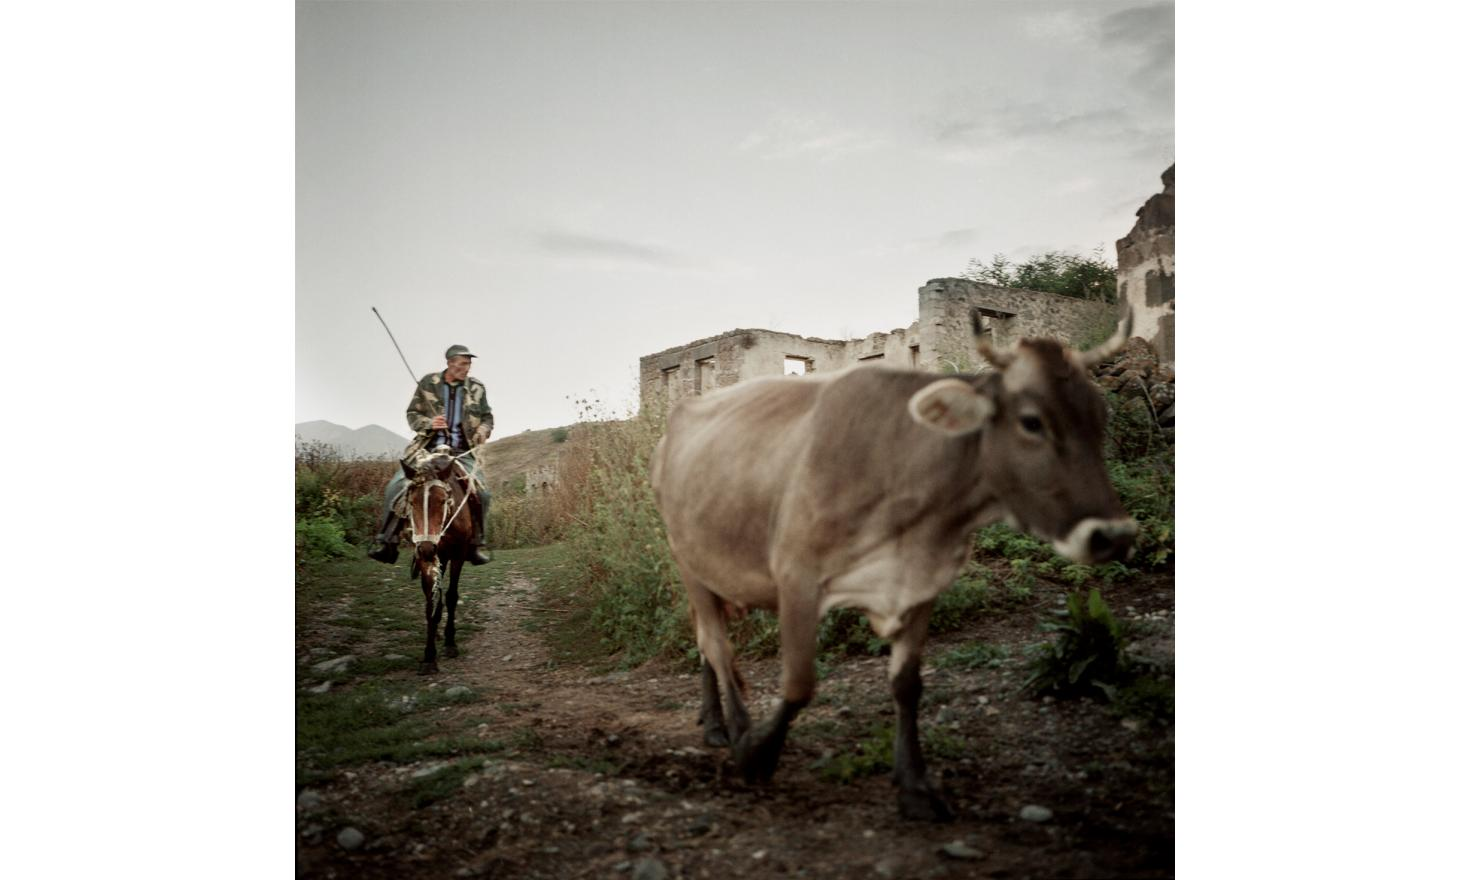 Hak, Kashatagh (Lachin) province. The shepherd comes back from the pasture at night. All the villagers pay him to take care of the beasts. Many inhabitants have beasts even if they are not all farmers. Their idea is to insure a food self-suffiency.